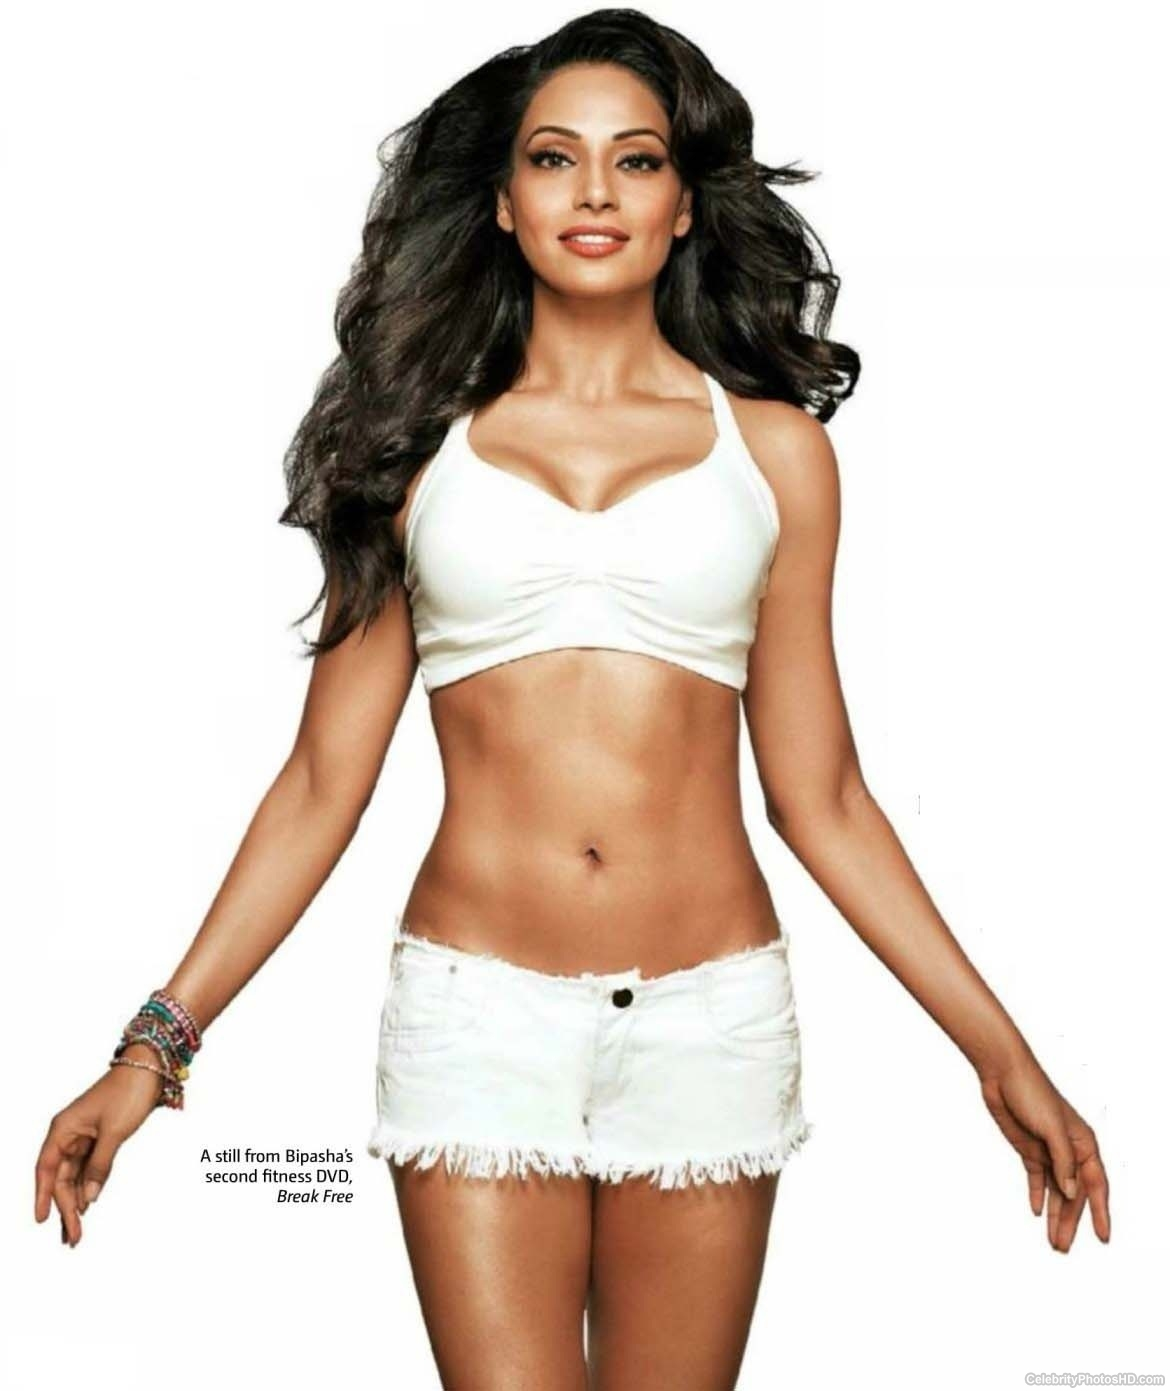 hot-actress-bipasha-basu-anushka-sharma-tabu-on-filmfare-magazine-february-photos-272388270